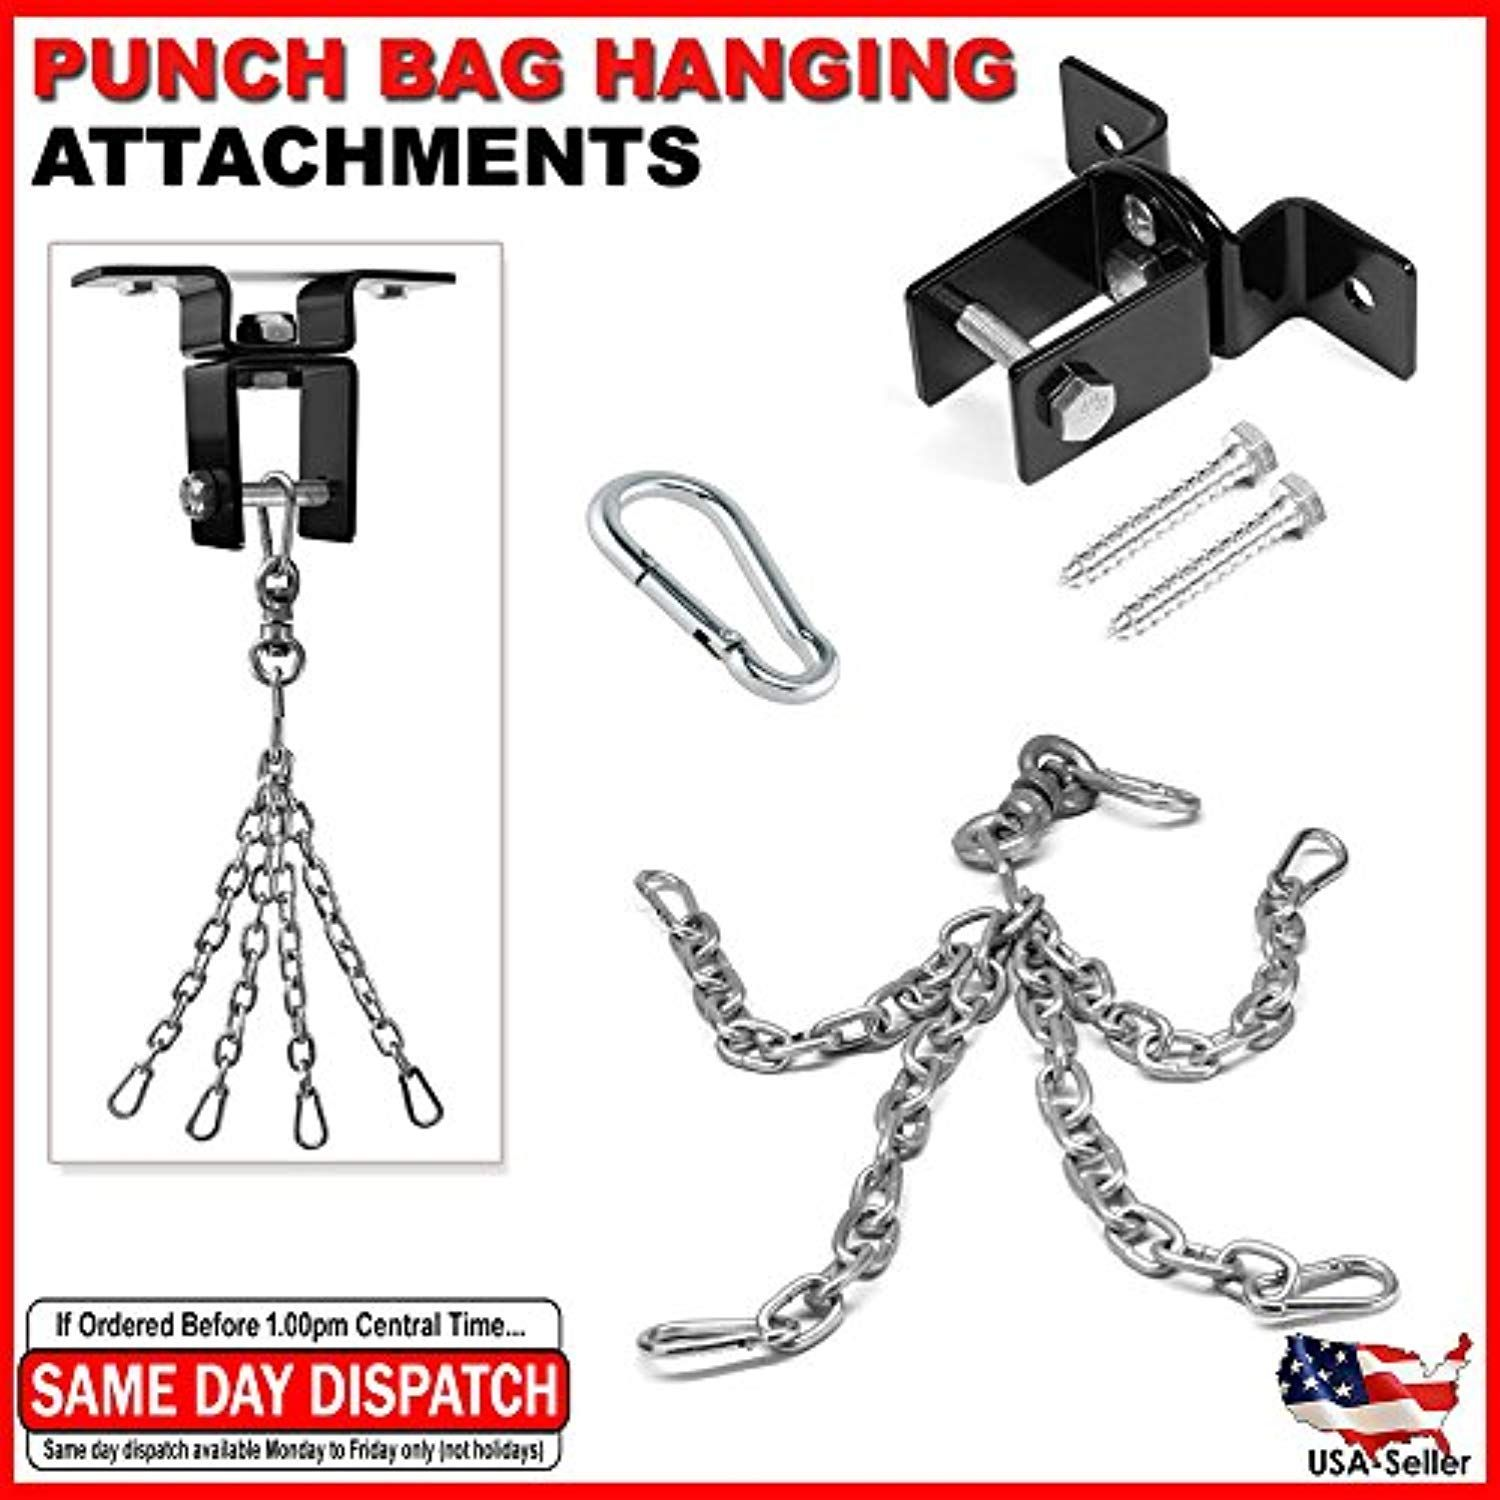 Attachment Heavy Bag Ceiling Swivel Mount Boxing MMA Gym Punching Hanging